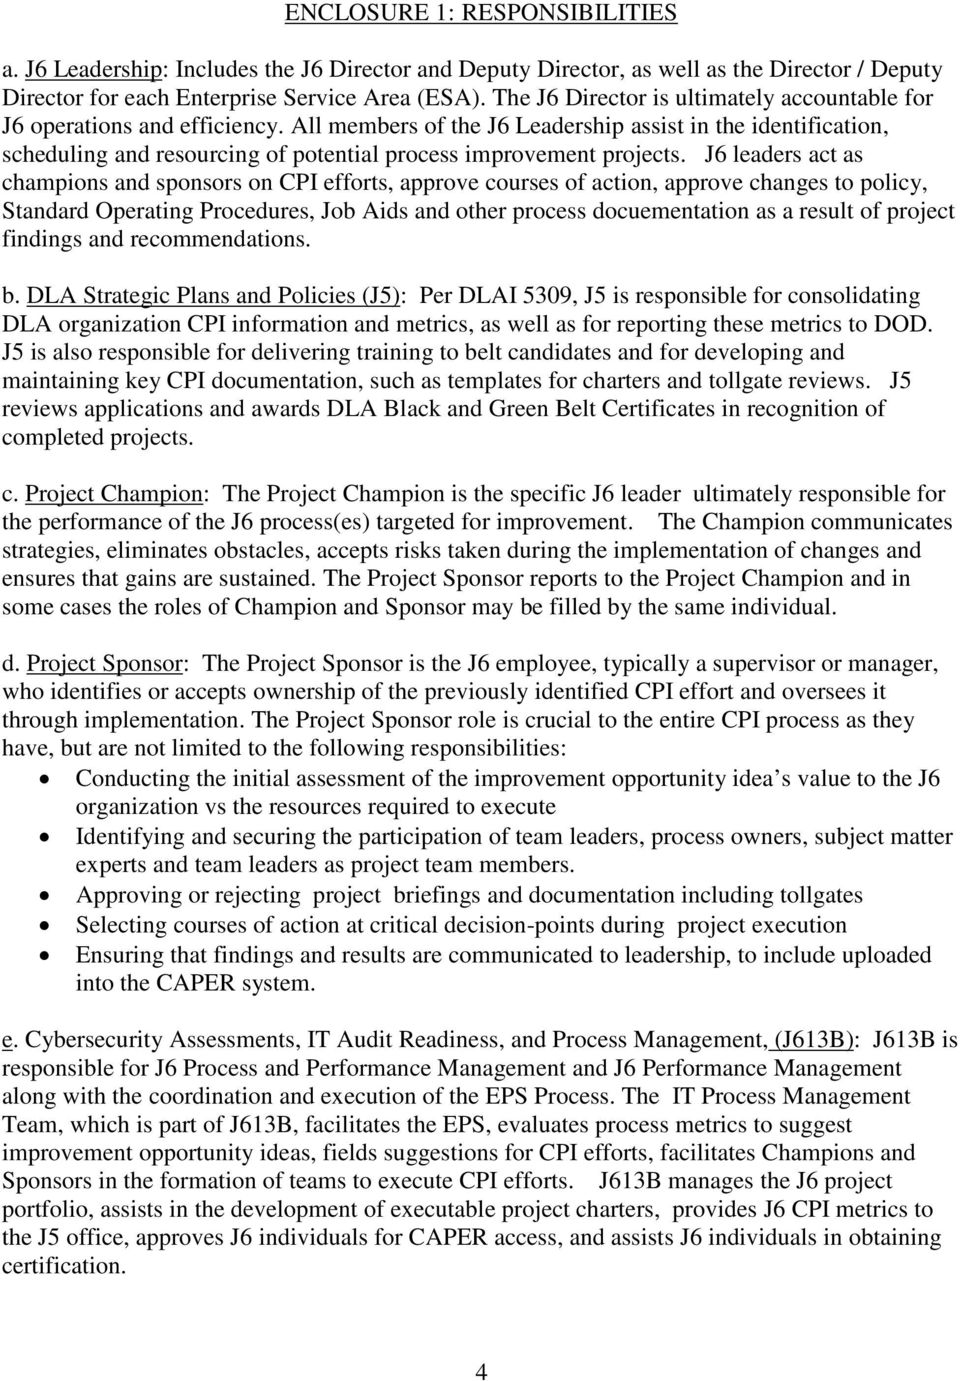 J6 ladrs act as champions and sponsors on CPI fforts, approv courss of action, approv changs to policy, Standard Oprating Procdurs, Job Aids and othr procss documntation as a rsult of projct findings